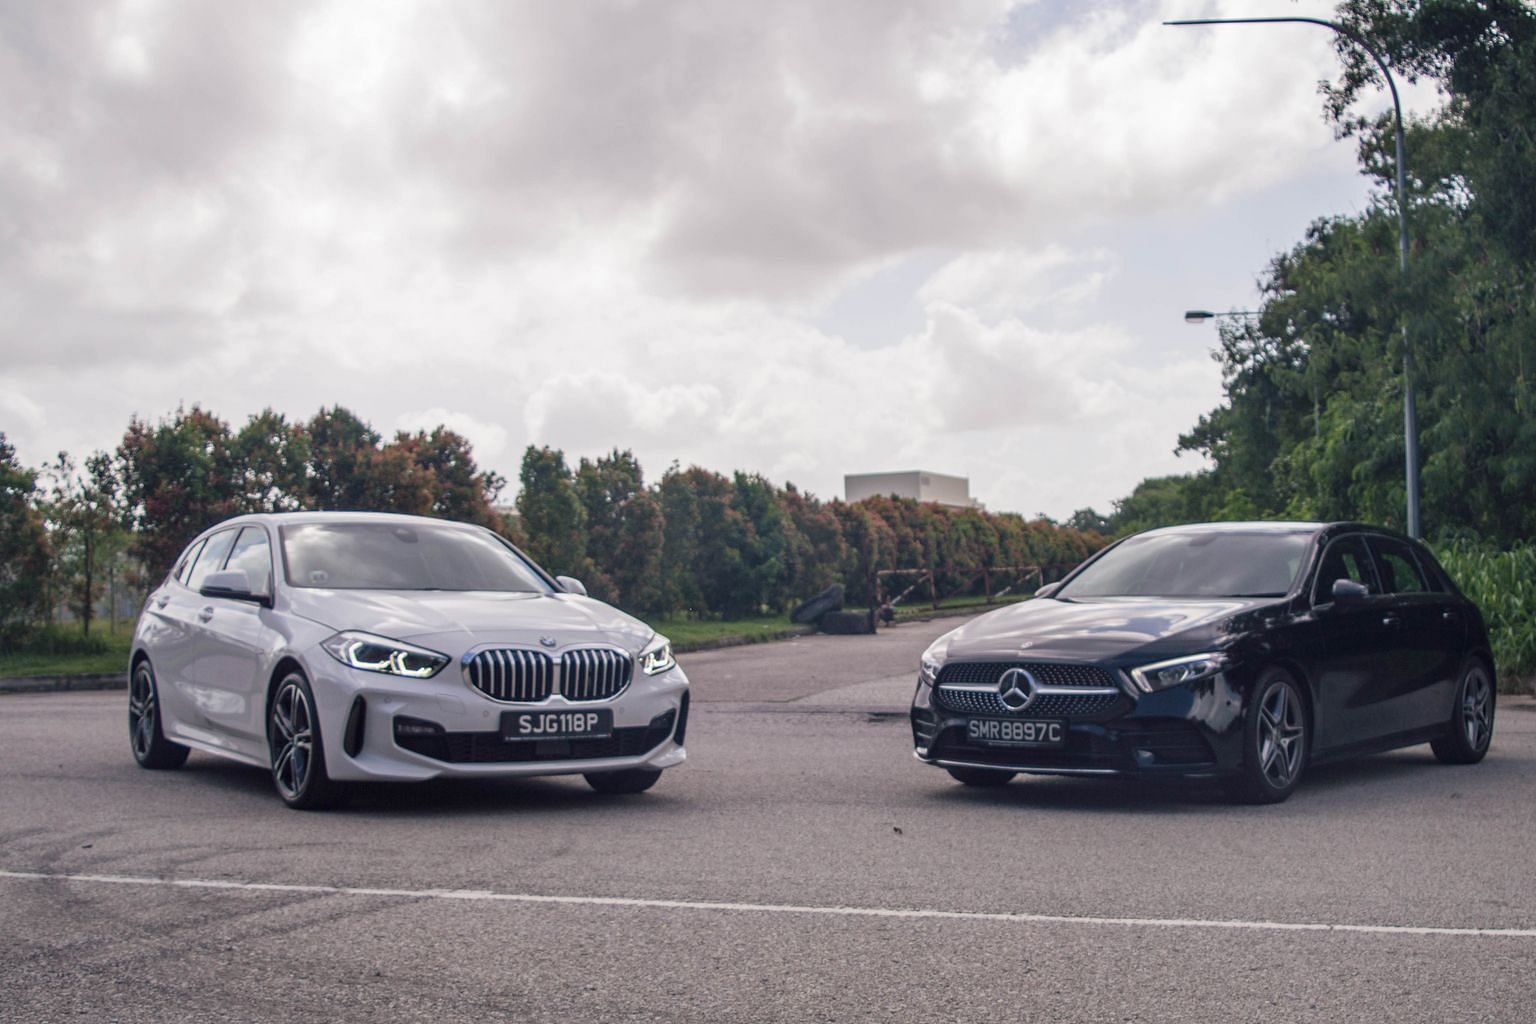 The BMW 118i M Sport (left) has high-gloss black exterior trims and 18-inch M wheels, while the Mercedes-Benz A200 AMG (right) sports a single-louvred diamond grille and 18-inch AMG wheels.